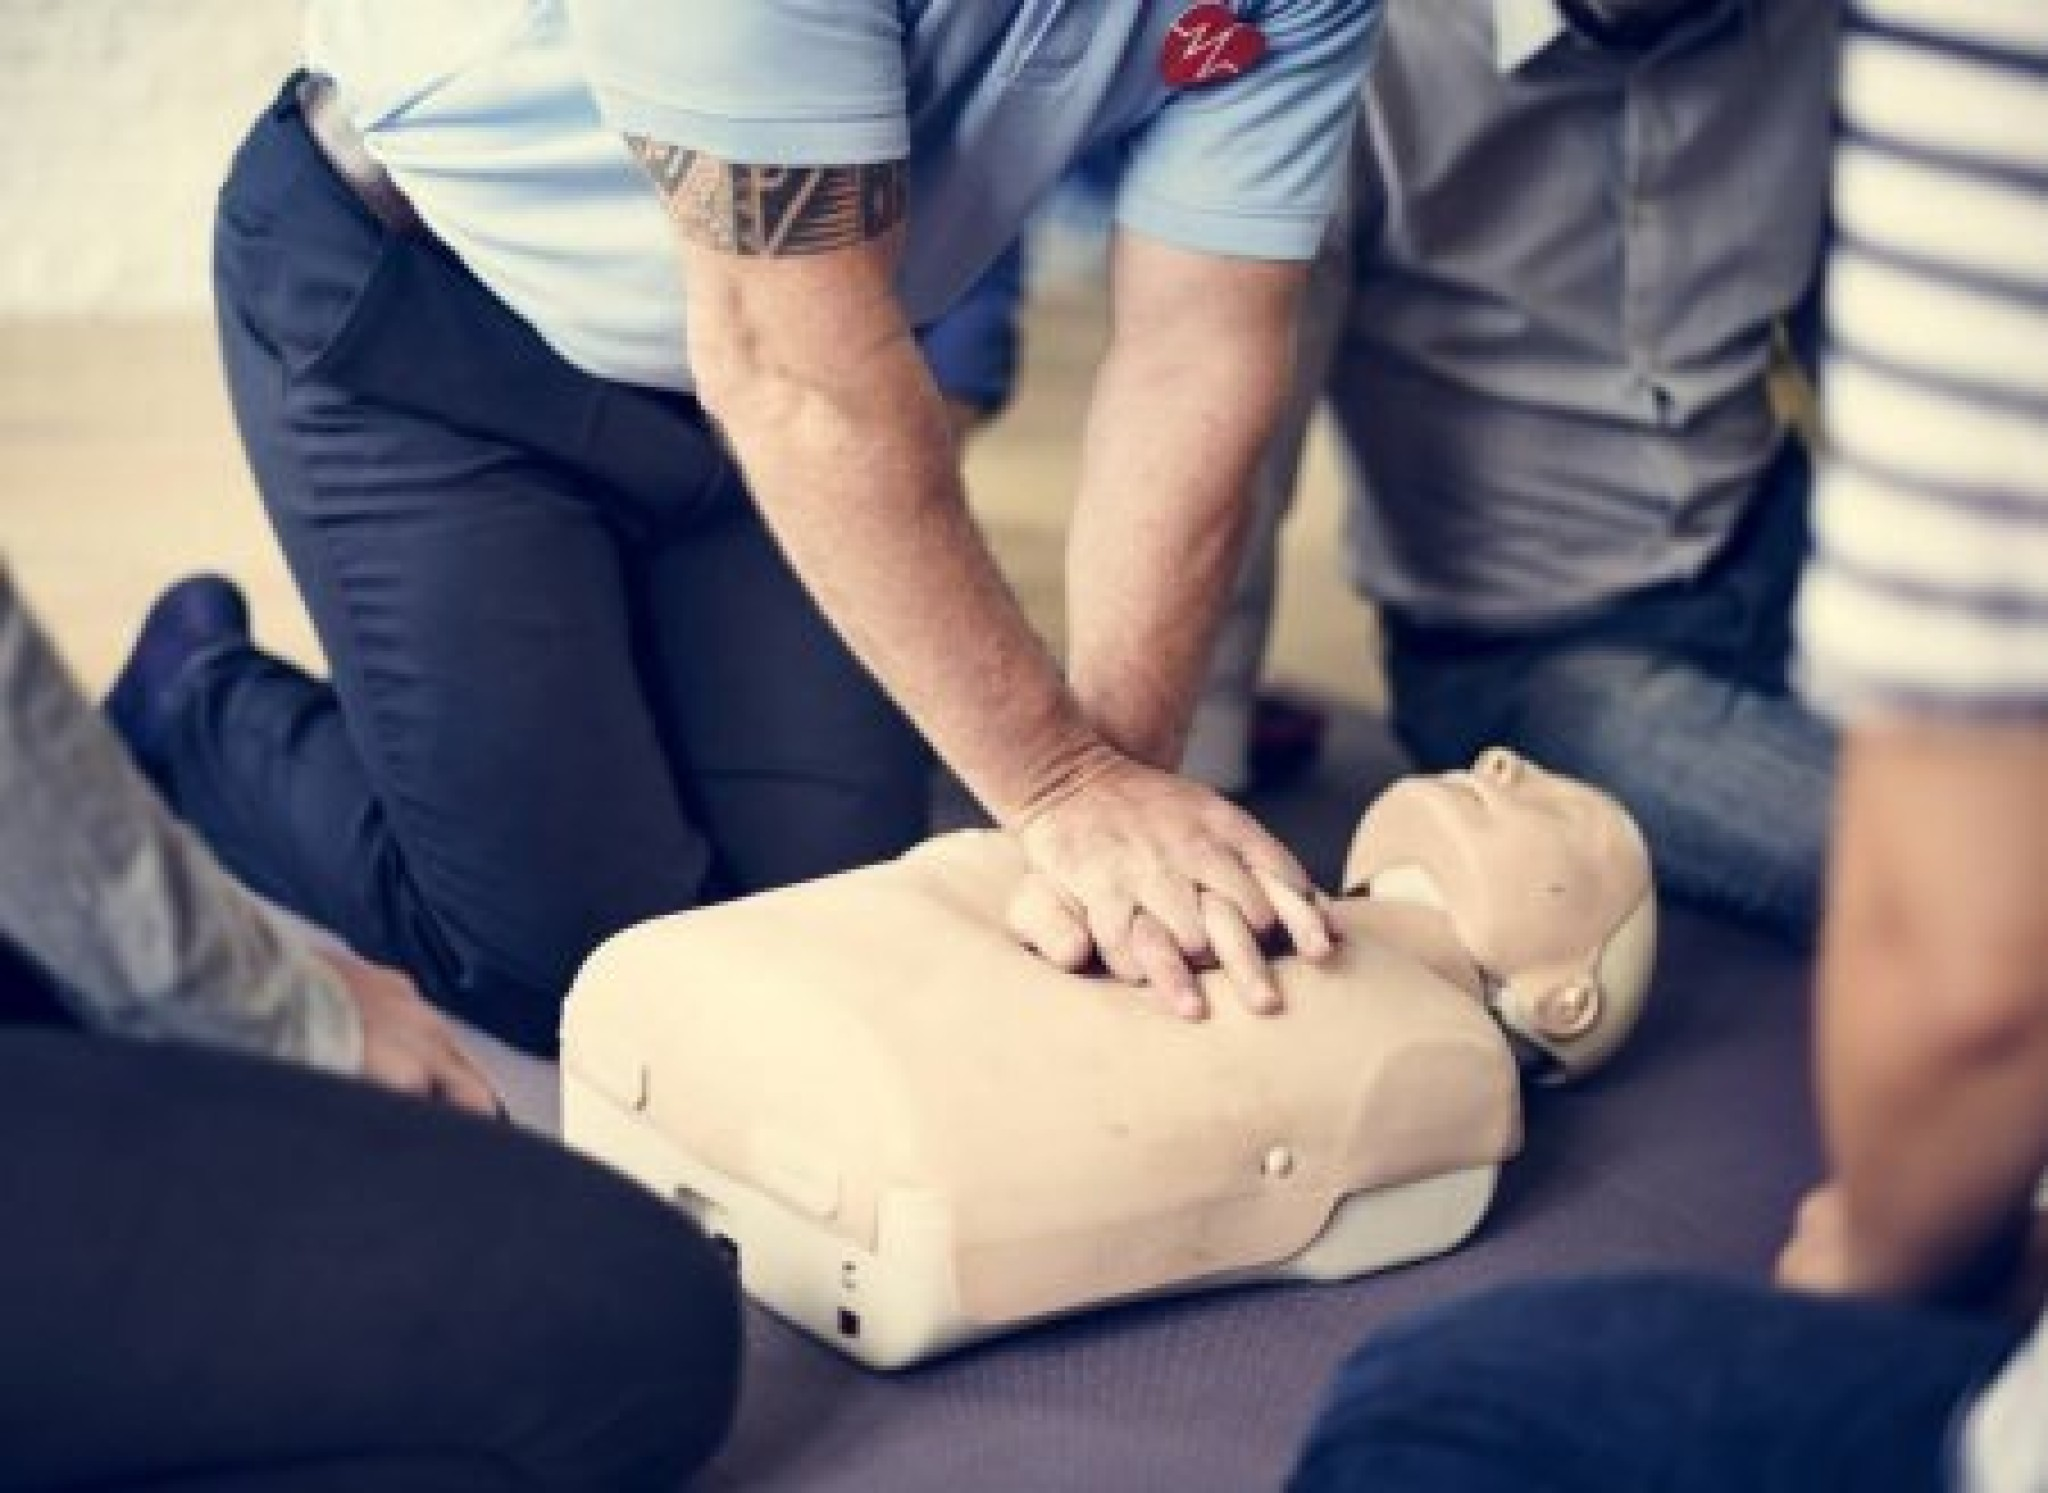 depositphotos_137514770-stock-photo-people-learning-cpr-first-aid.jpg